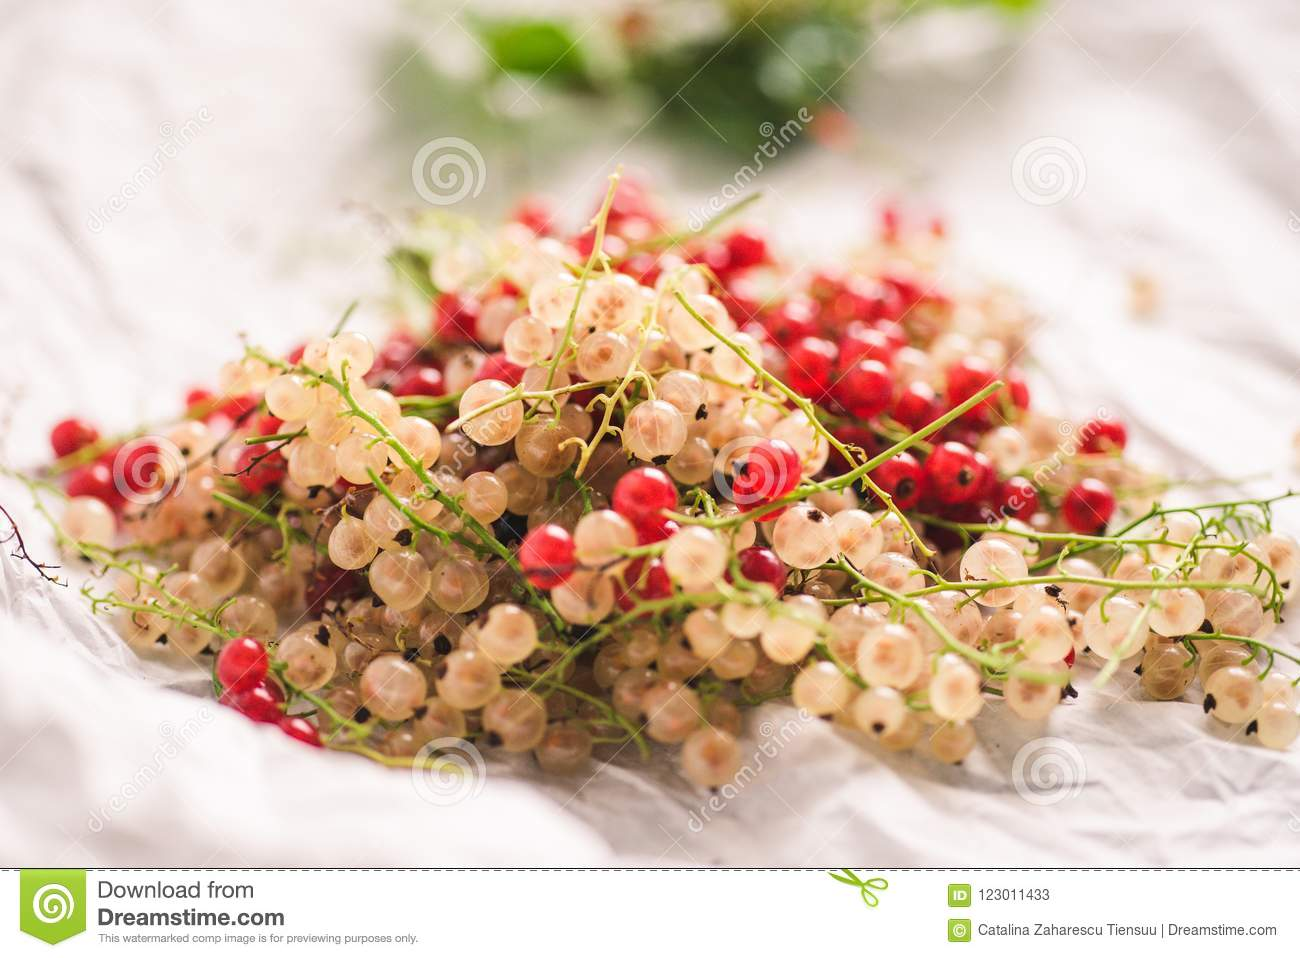 Red and white currants on a white paper